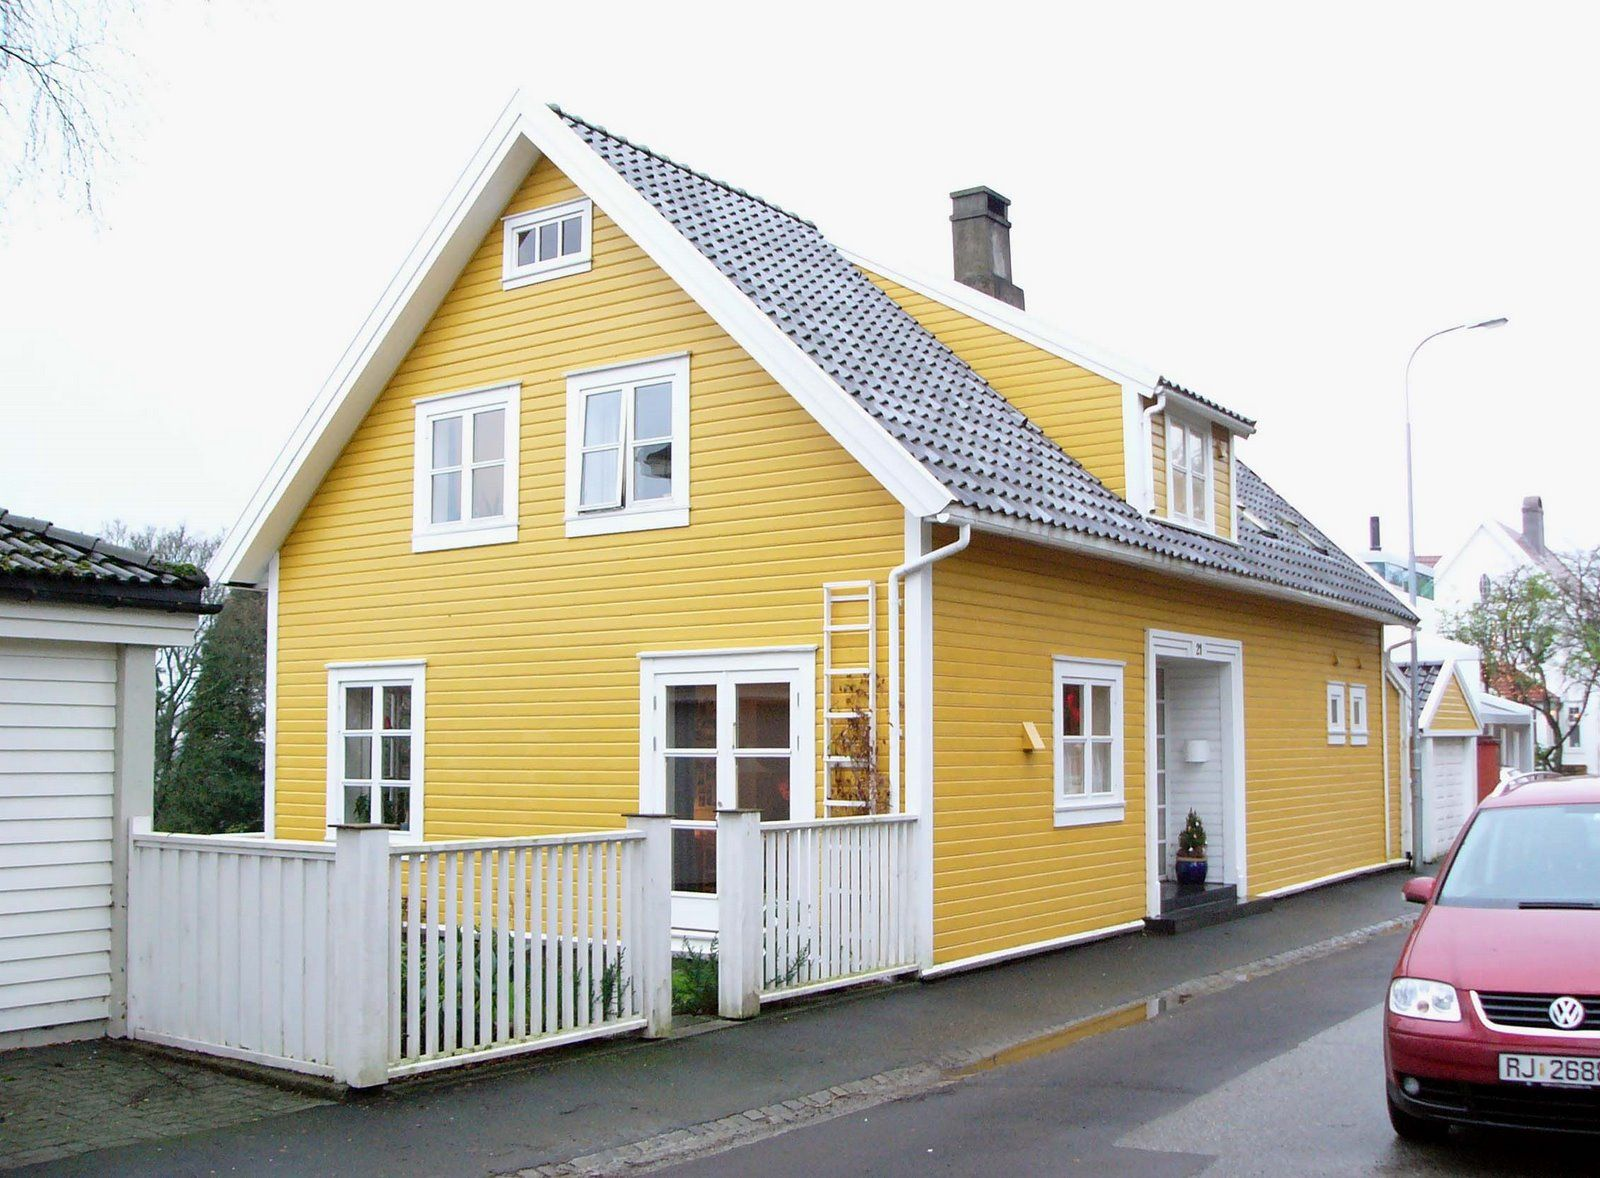 The Yellow Brick House